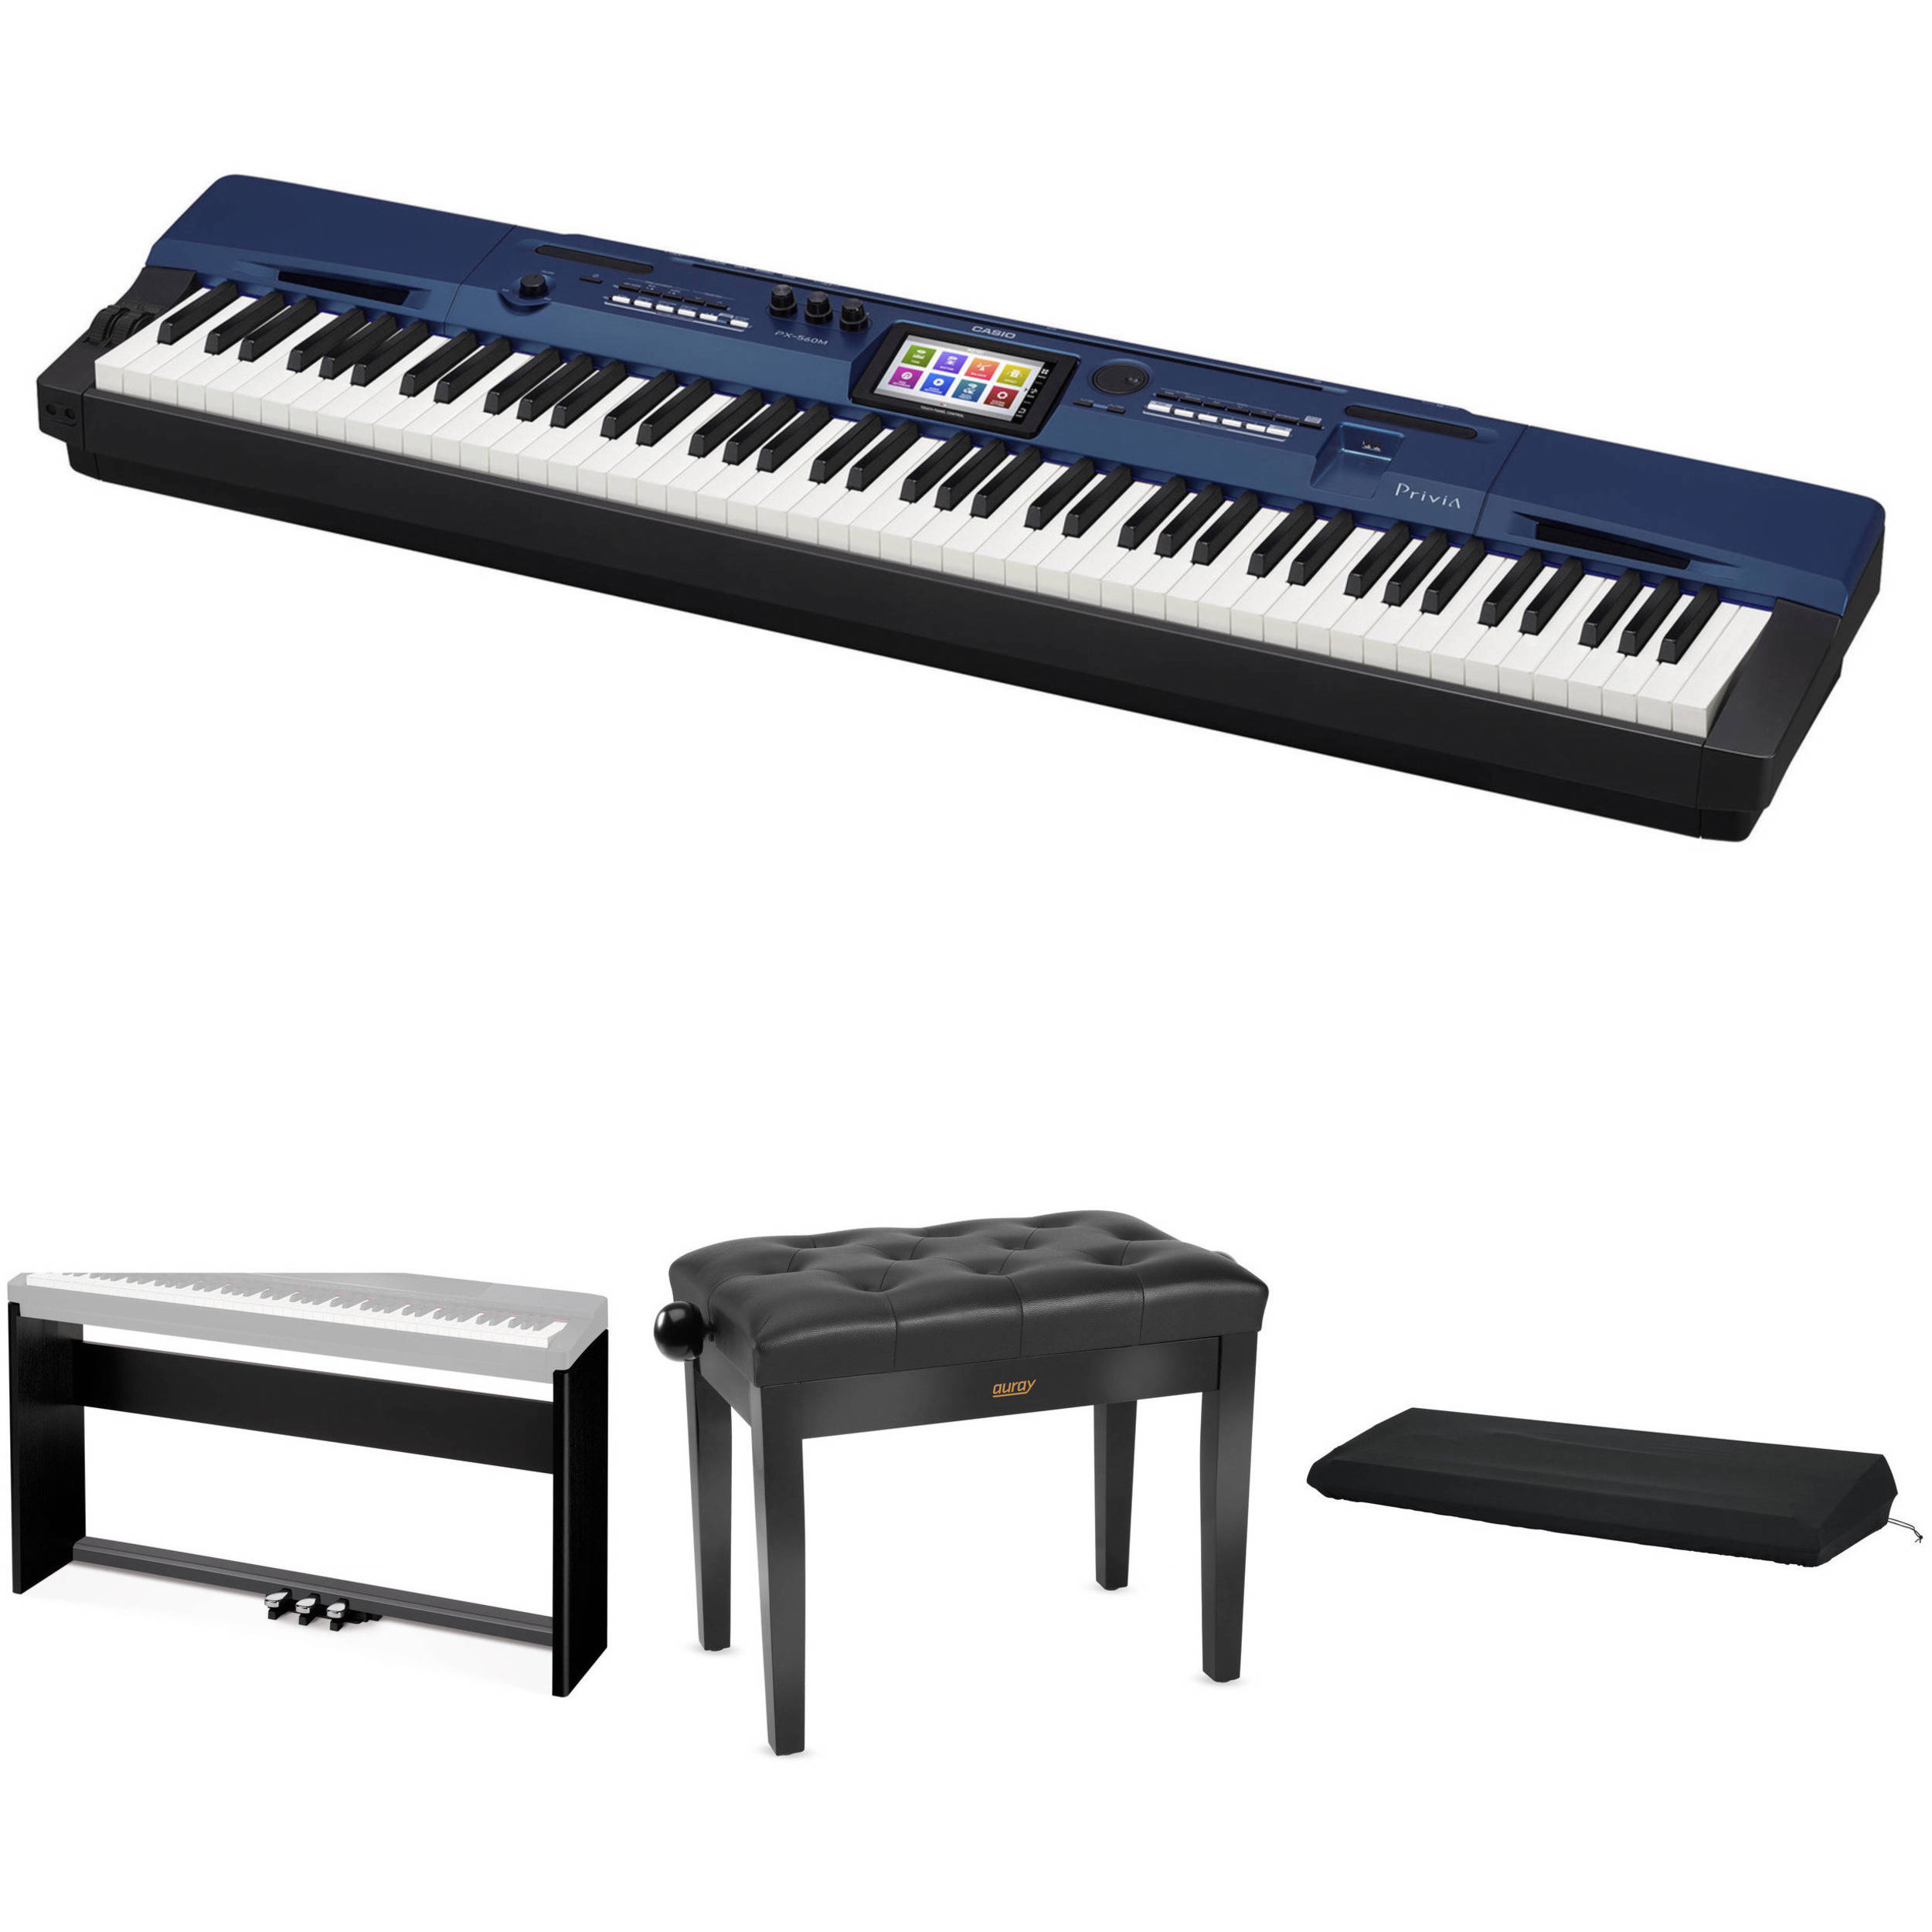 Casio px 560 privia 88 key digital piano with stand bench bh casio px 560 privia 88 key digital piano with stand bench accessories hexwebz Image collections